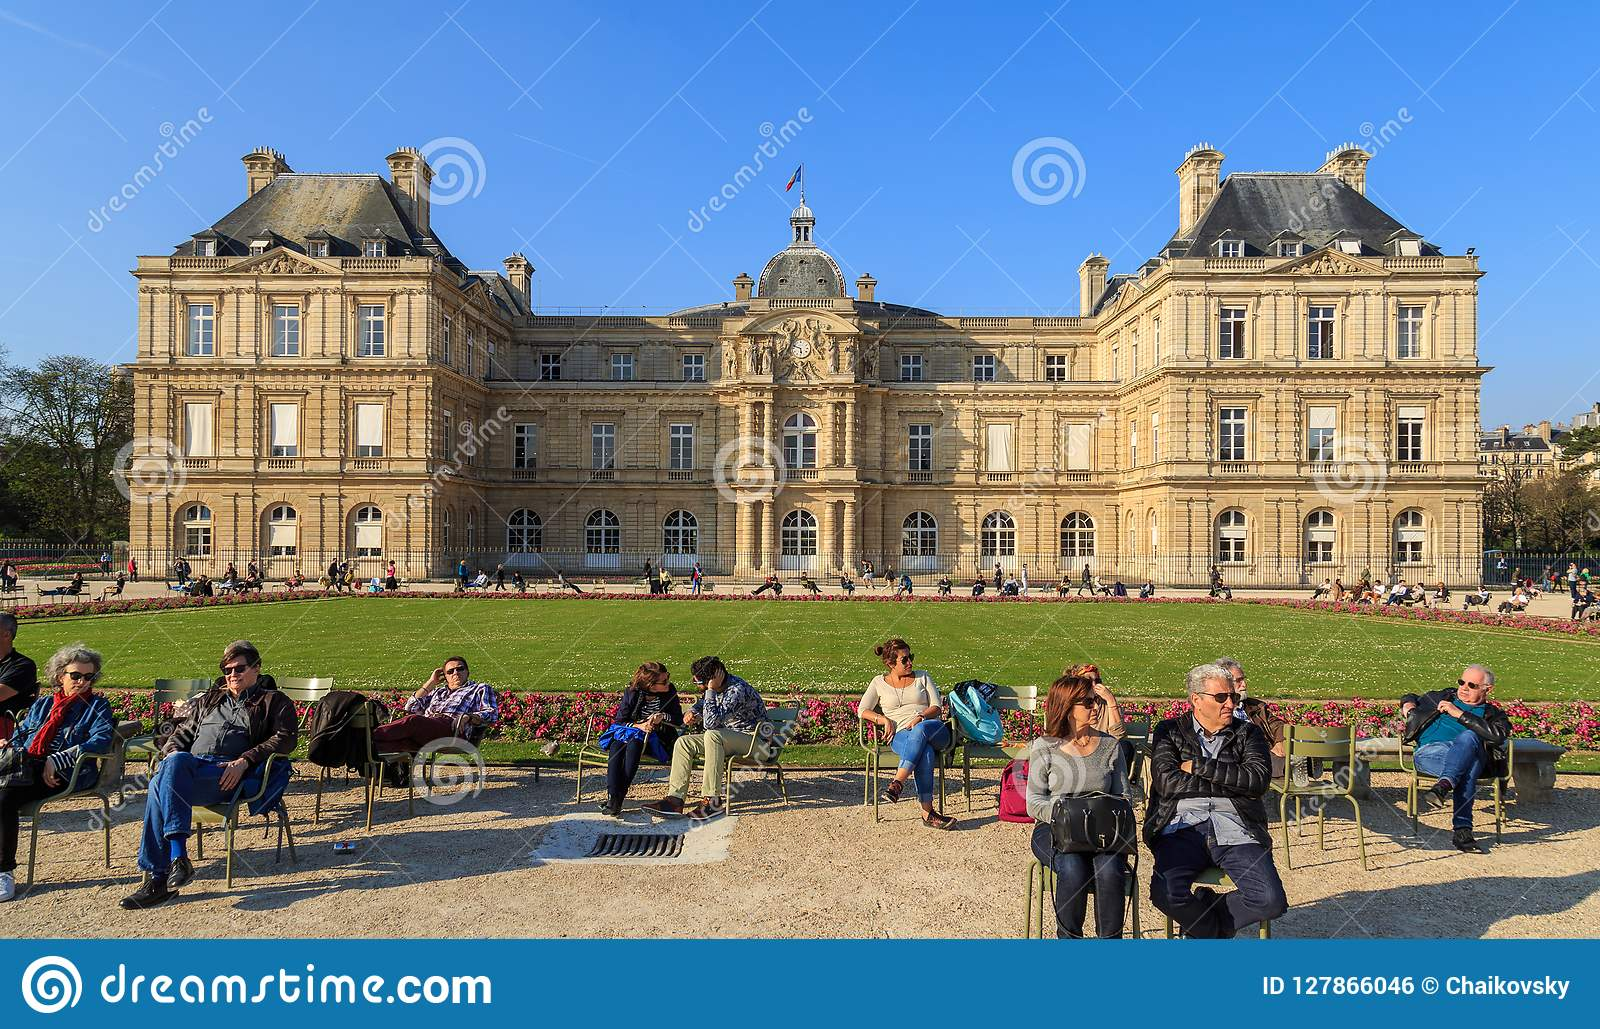 Paris, France, March 27 2017: People enjoy sunny day in the Luxembourg Garden in Paris. Luxembourg Palace is the